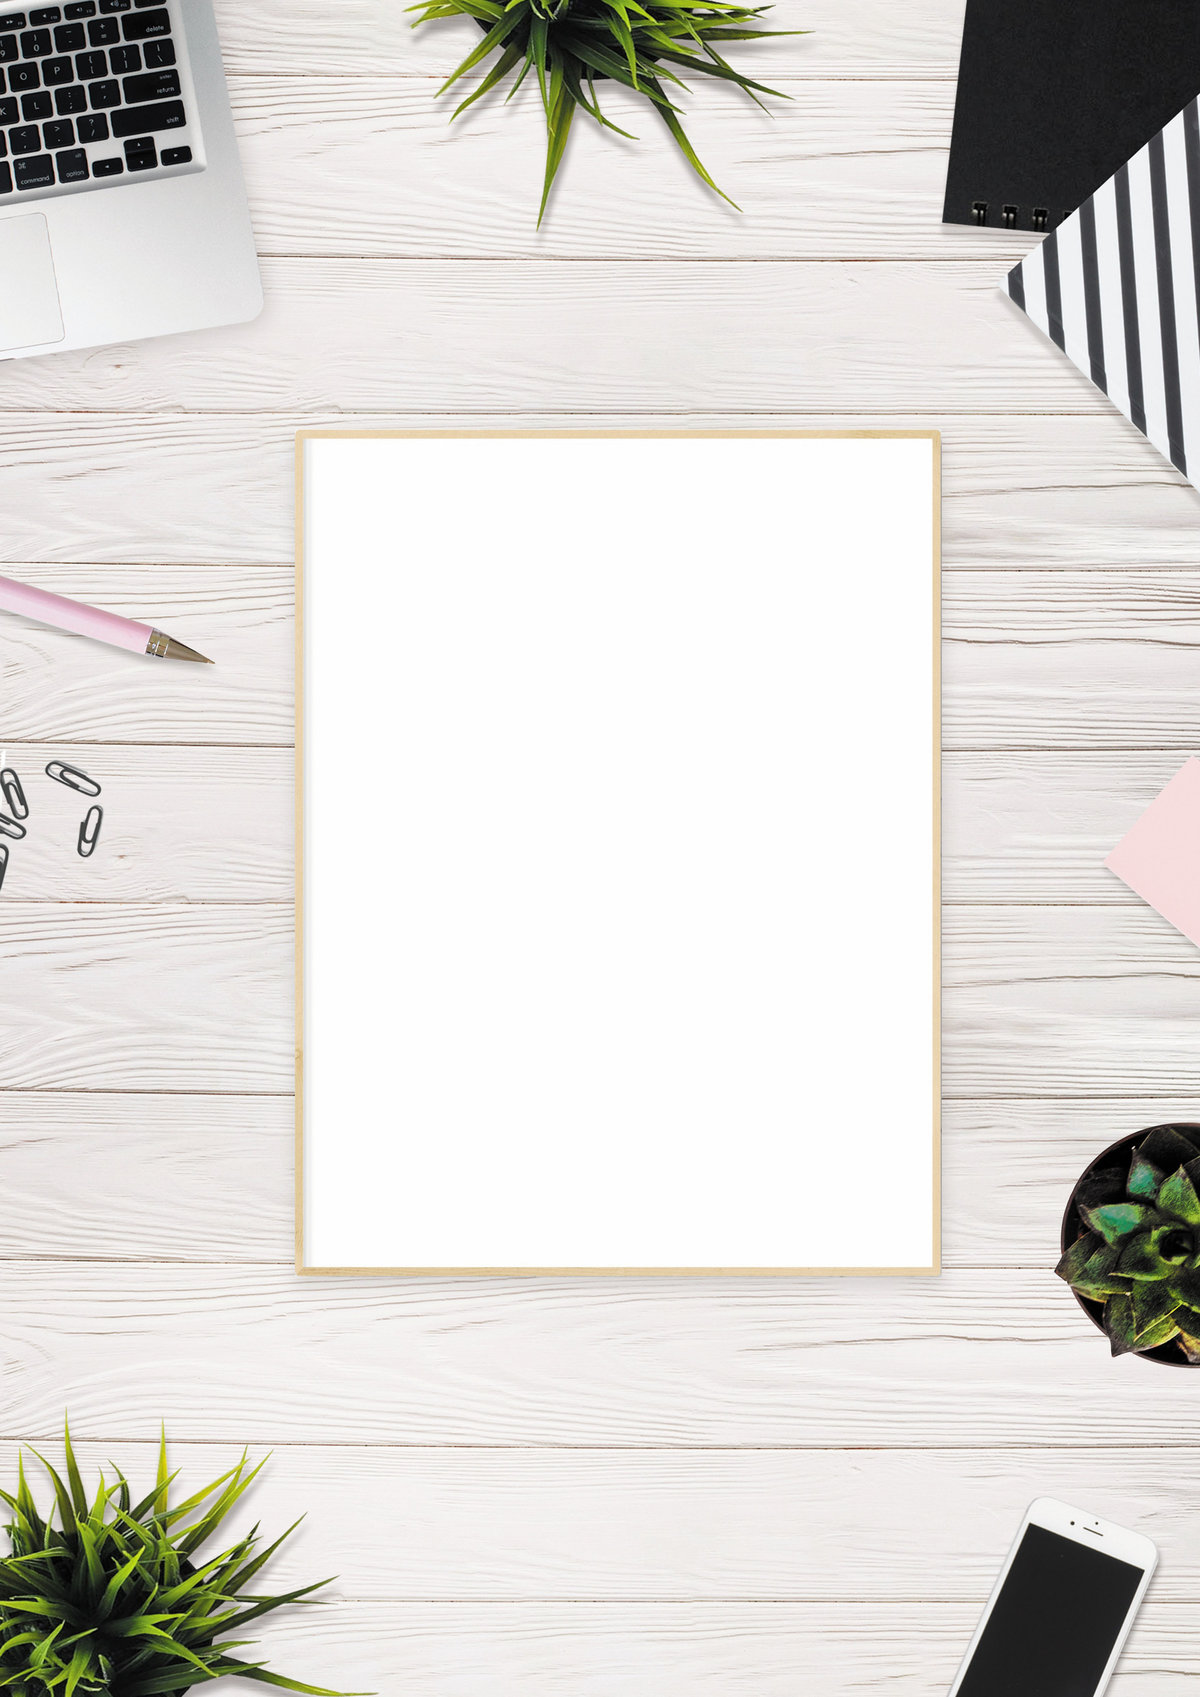 album-background-blank-1089842